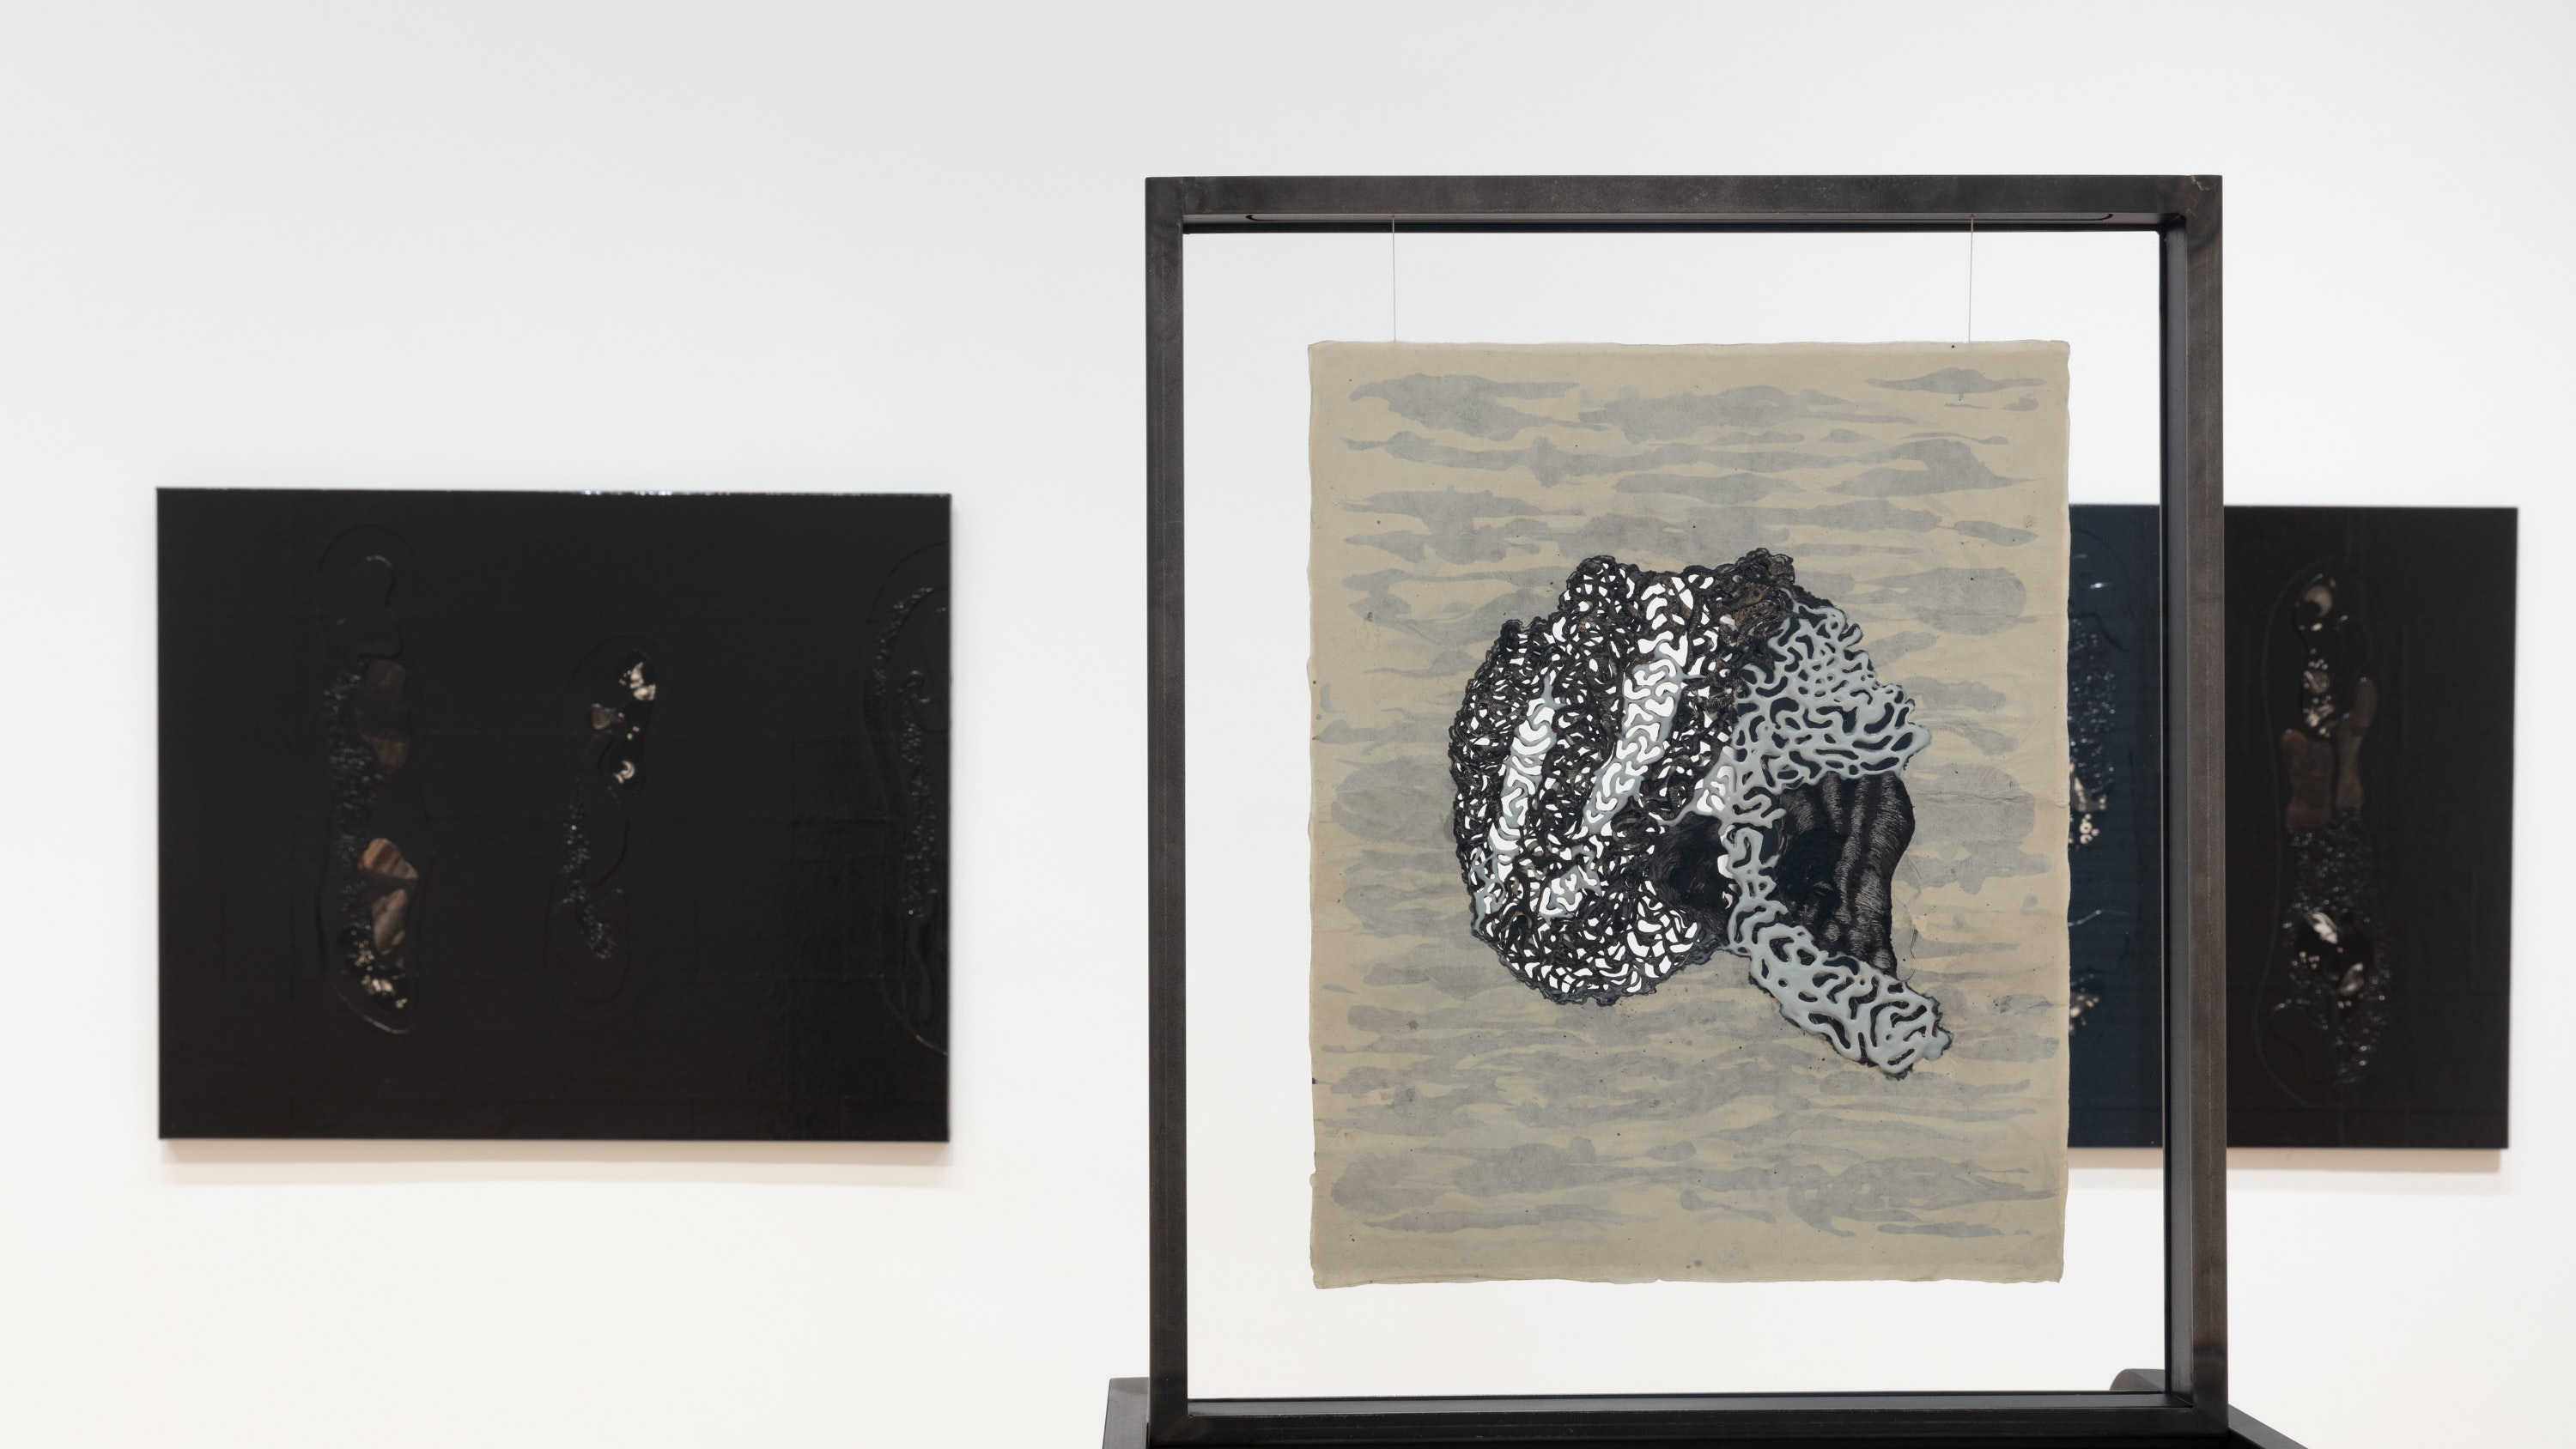 Installation view of two paintings and a drawing by Ellen Gallagher